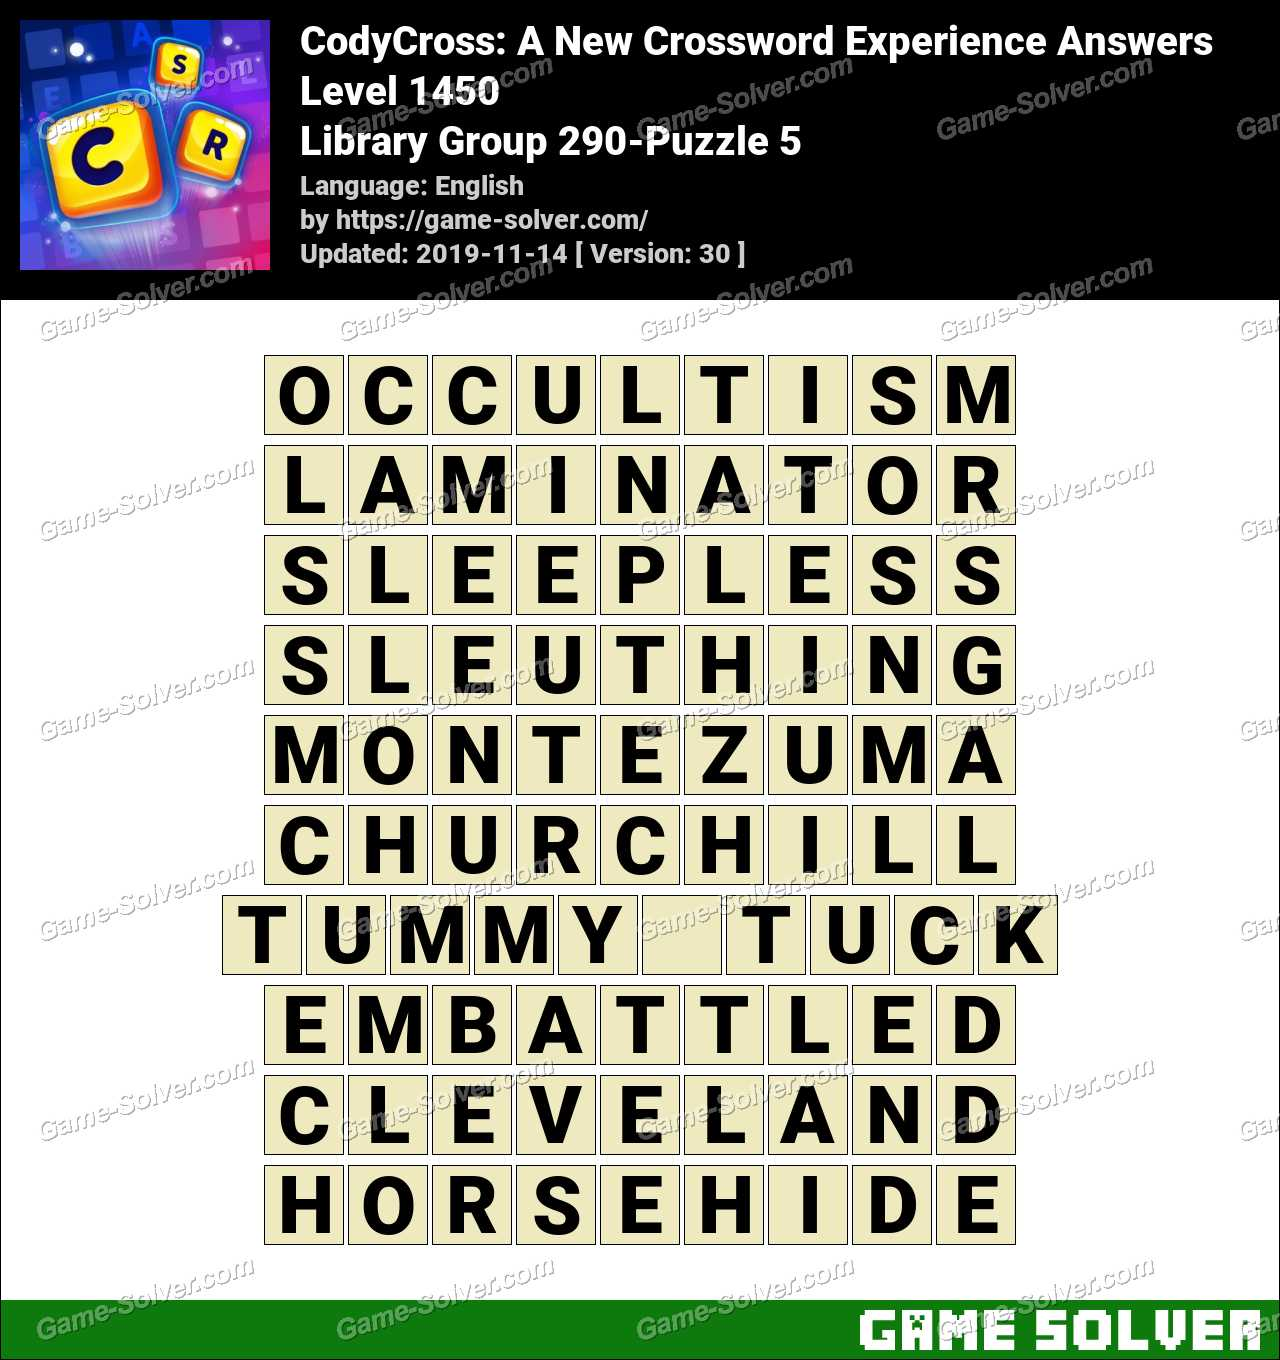 CodyCross Library Group 290-Puzzle 5 Answers